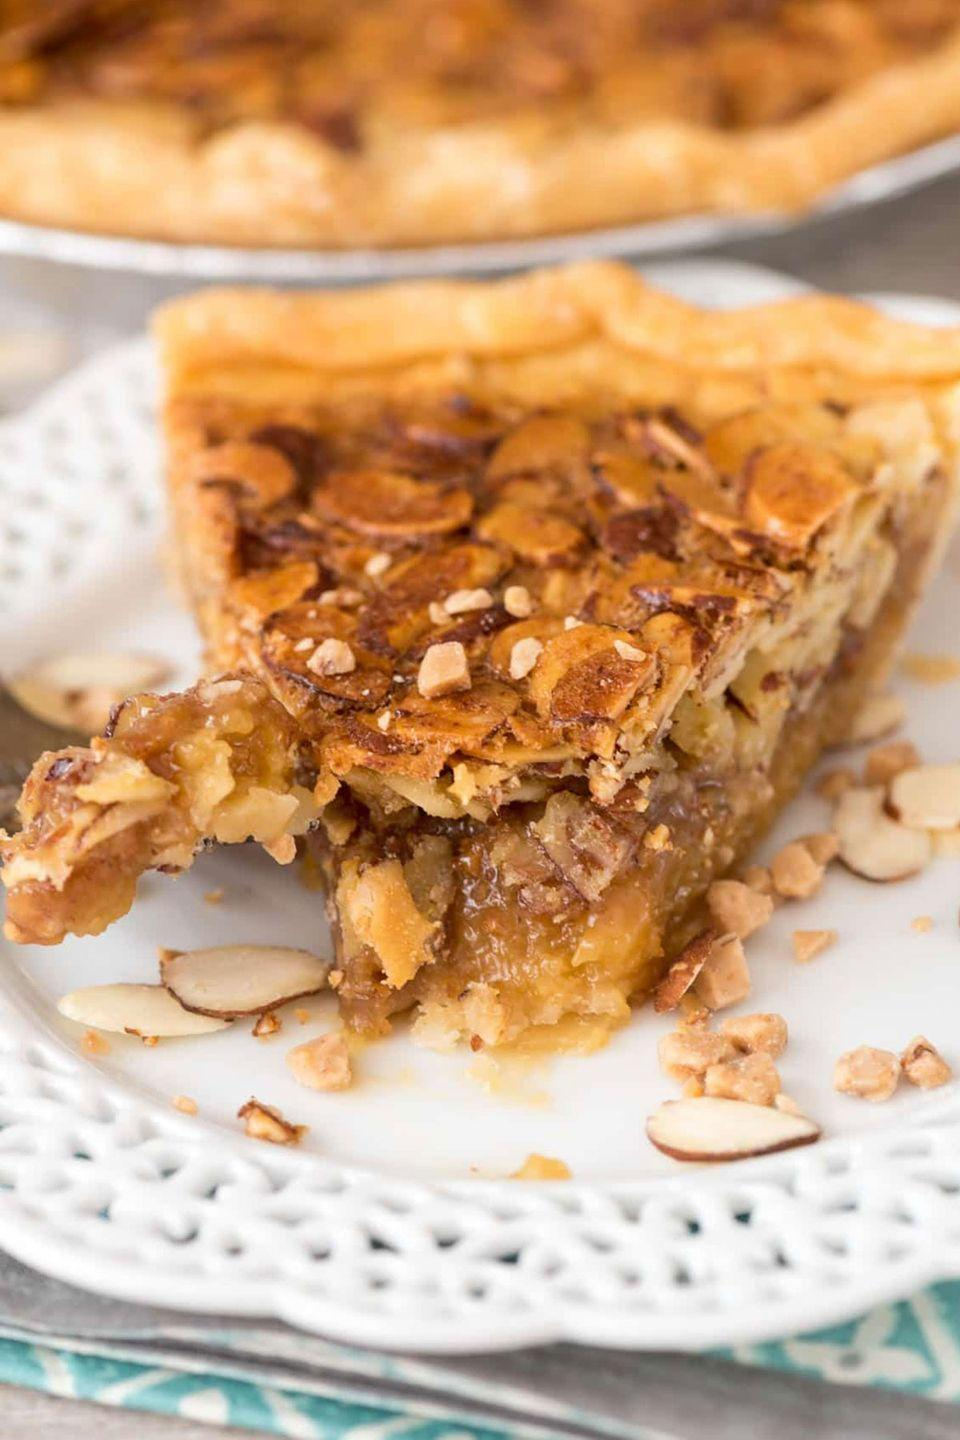 """<p>Give your dessert some crunch with this rich, flavorful recipe.</p><p><strong>Get the recipe at <a href=""""http://www.crazyforcrust.com/2016/11/toffee-almond-pie/"""" rel=""""nofollow noopener"""" target=""""_blank"""" data-ylk=""""slk:Crazy for Crust"""" class=""""link rapid-noclick-resp"""">Crazy for Crust</a>.</strong> </p>"""